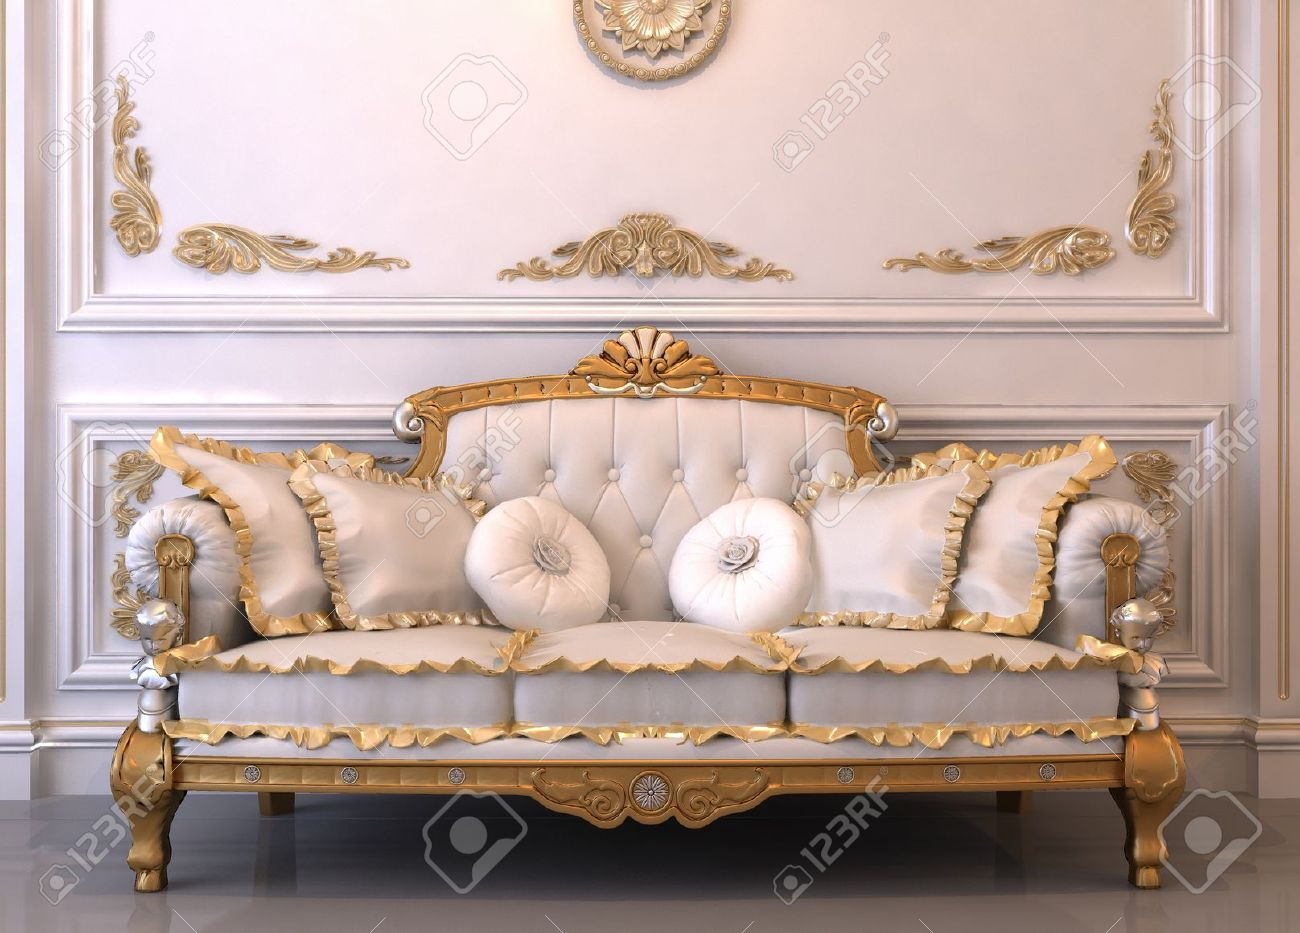 Luxurious Leather Sofa With Pillows In Royal Interior Stock Photo   10329768